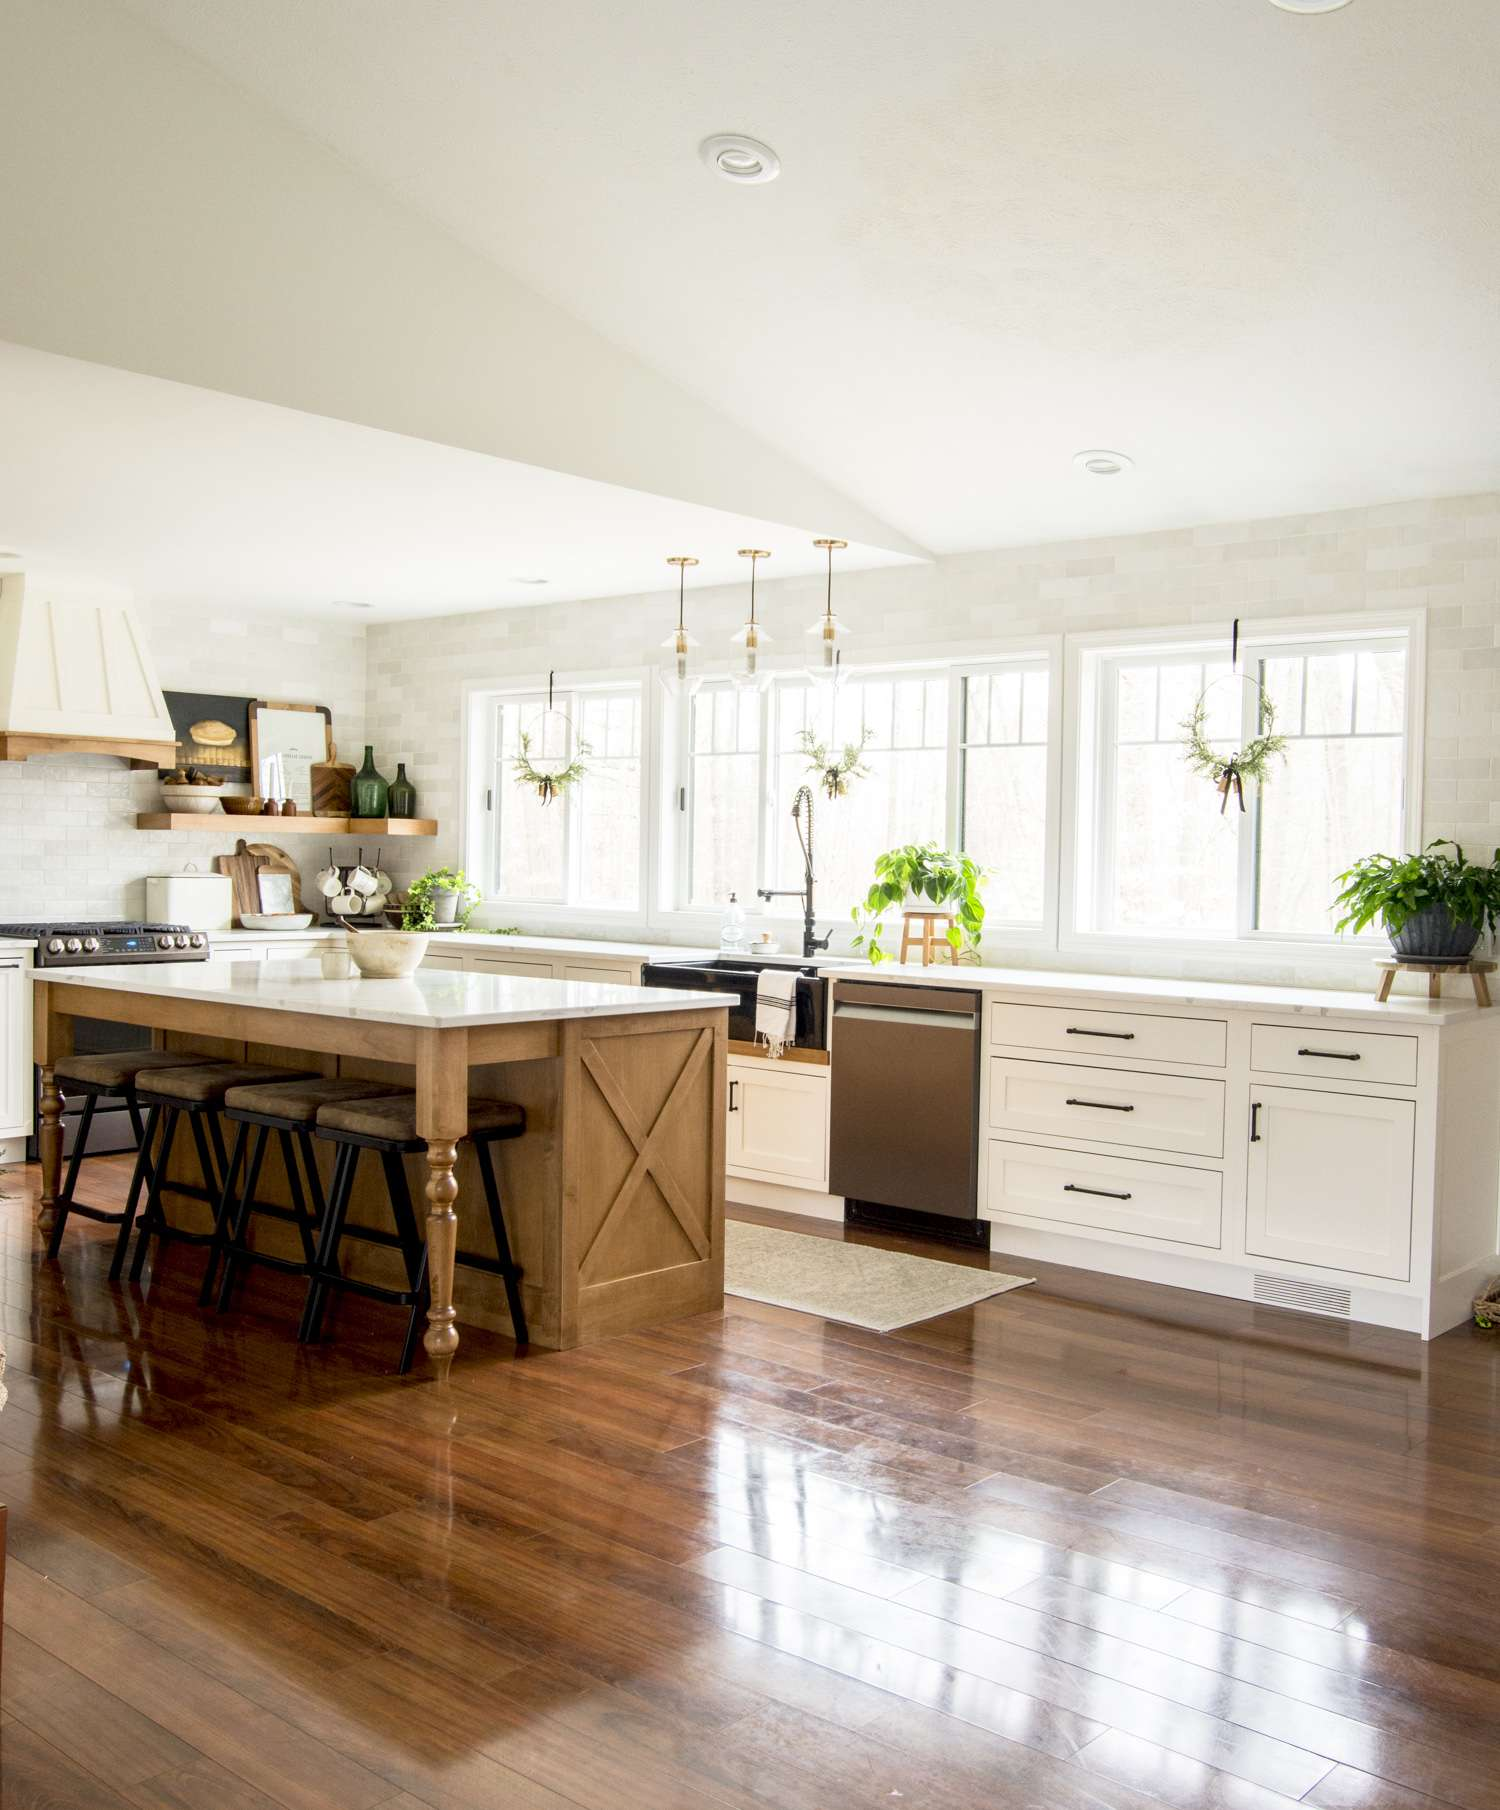 Remodeling a modern farmhouse kitchen is rewarding! In addition to increasing your home value, it's also a haven making project. Answering FAQs of my custom kitchen remodel.